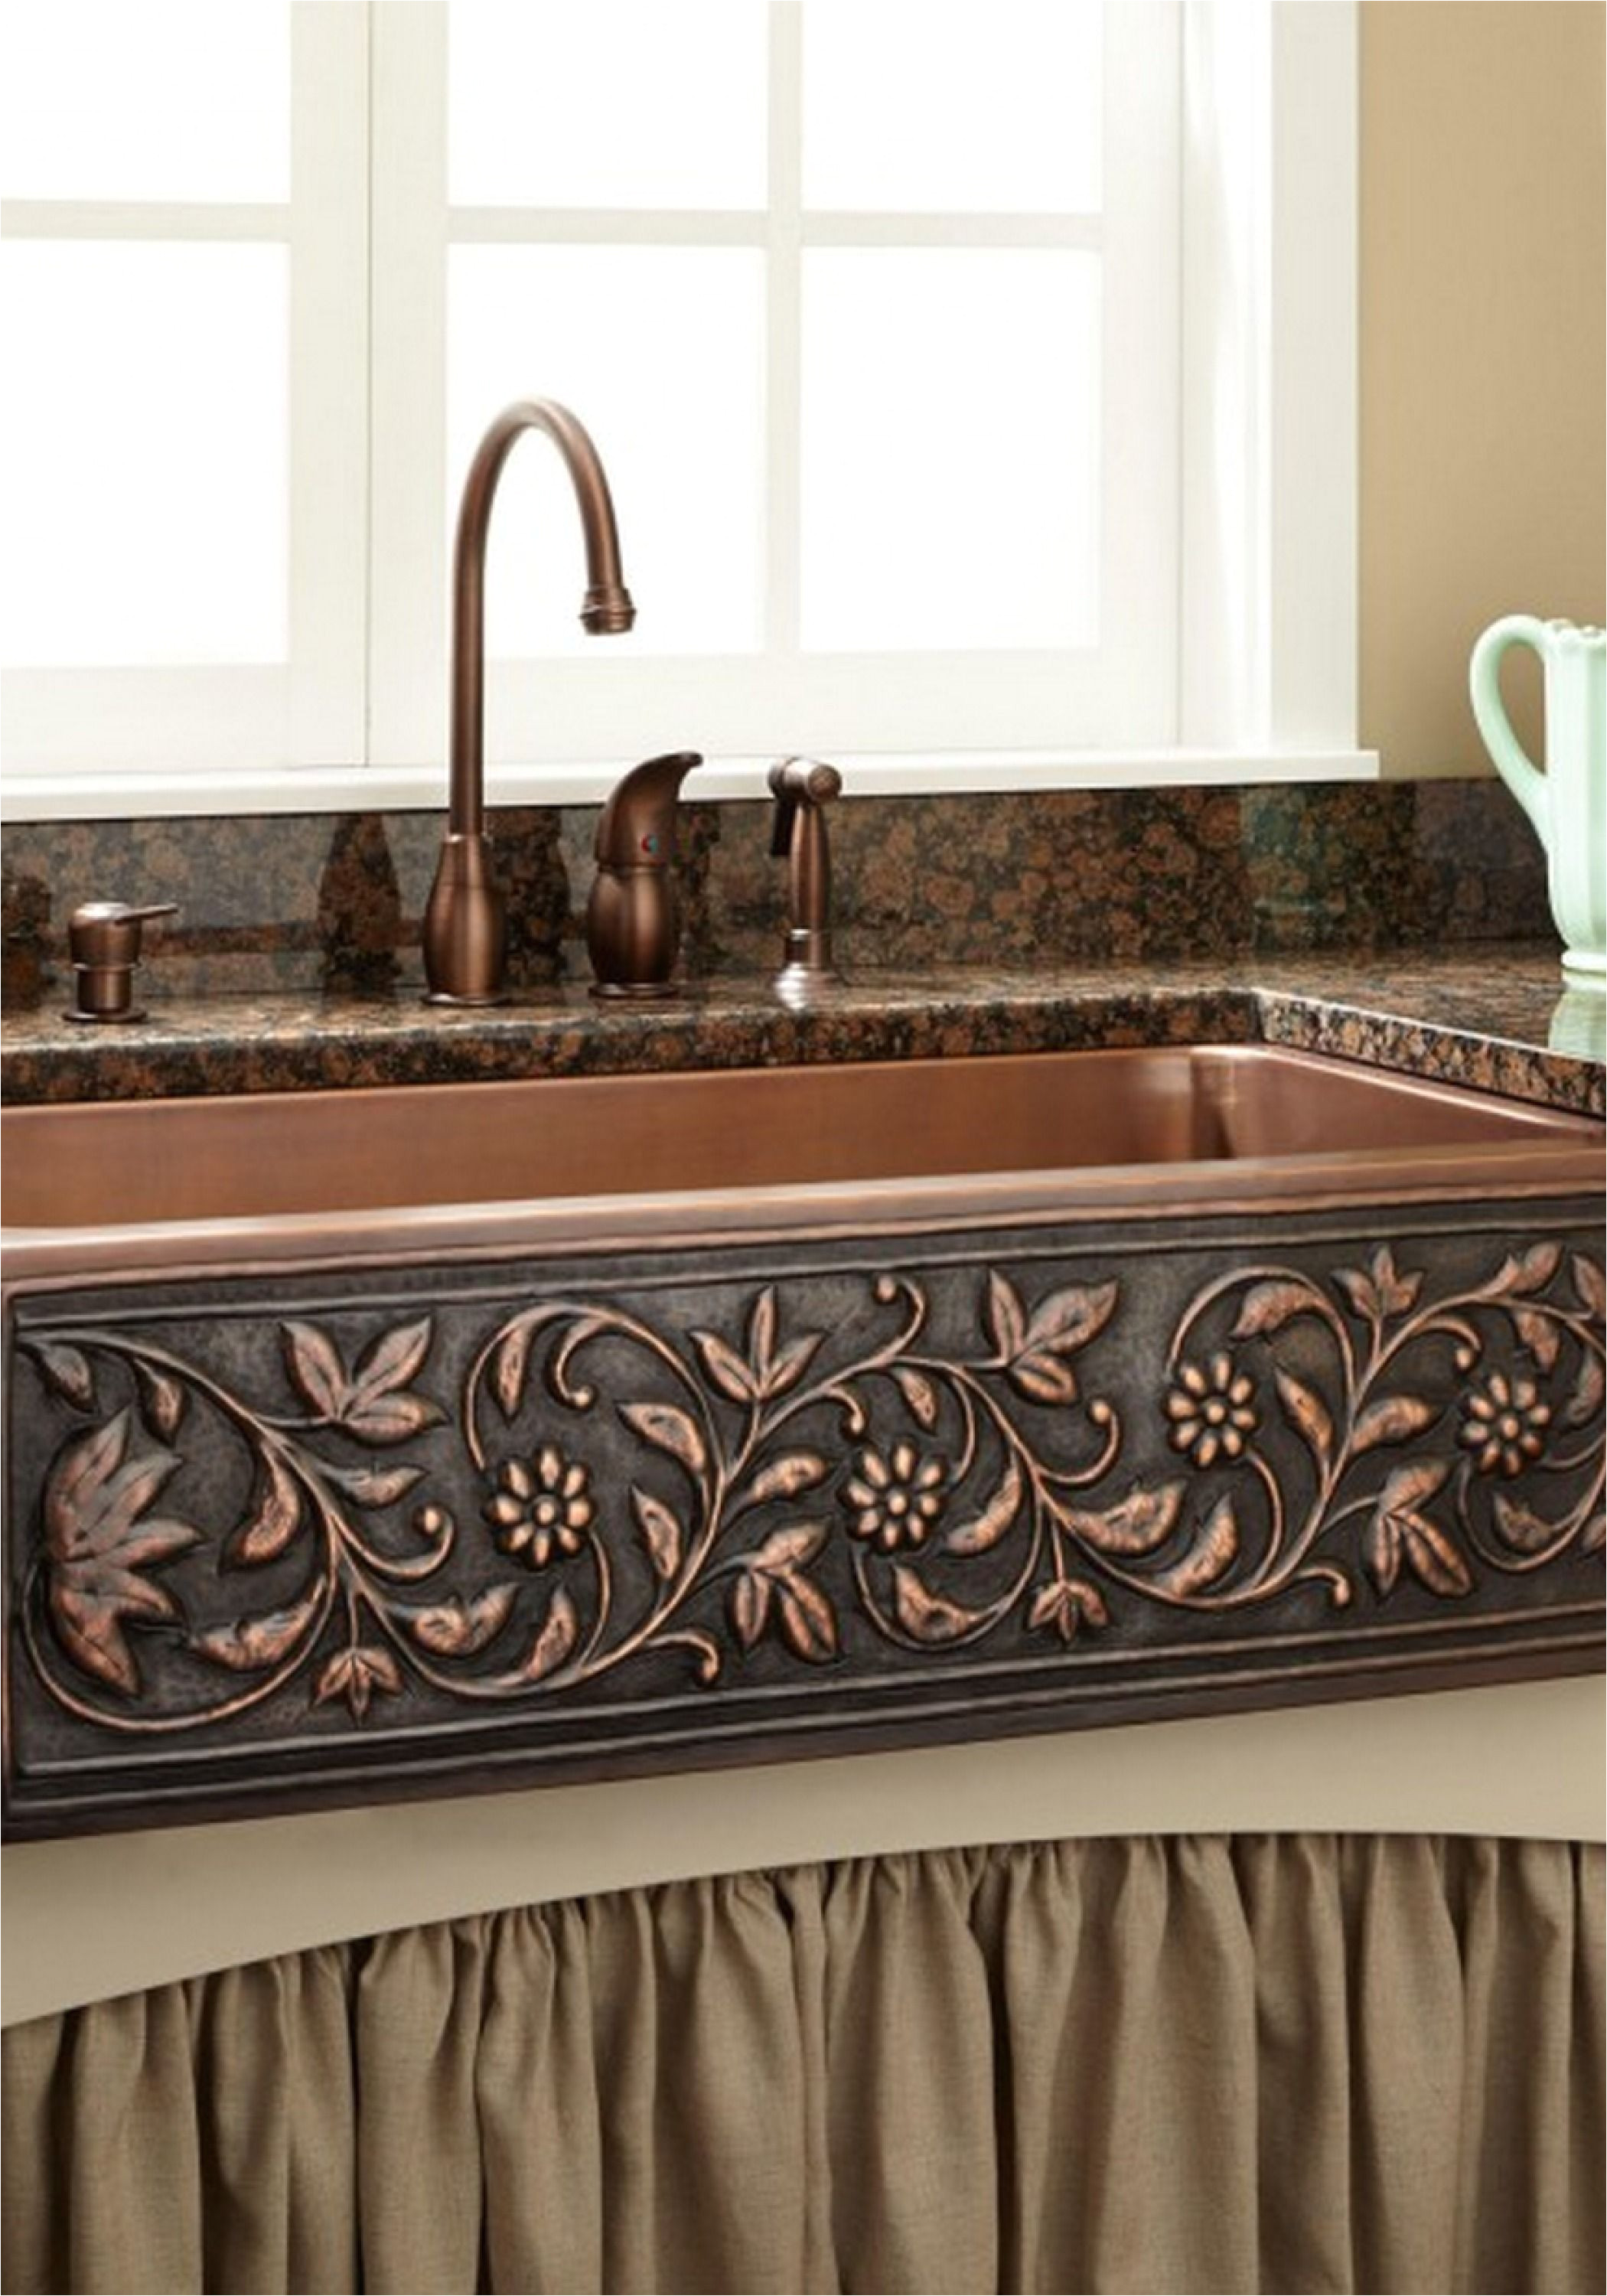 add a touch of natural beauty to your kitchen with this copper farmhouse sink pair it with a rustic kitchen faucet for a shabby chic style that will